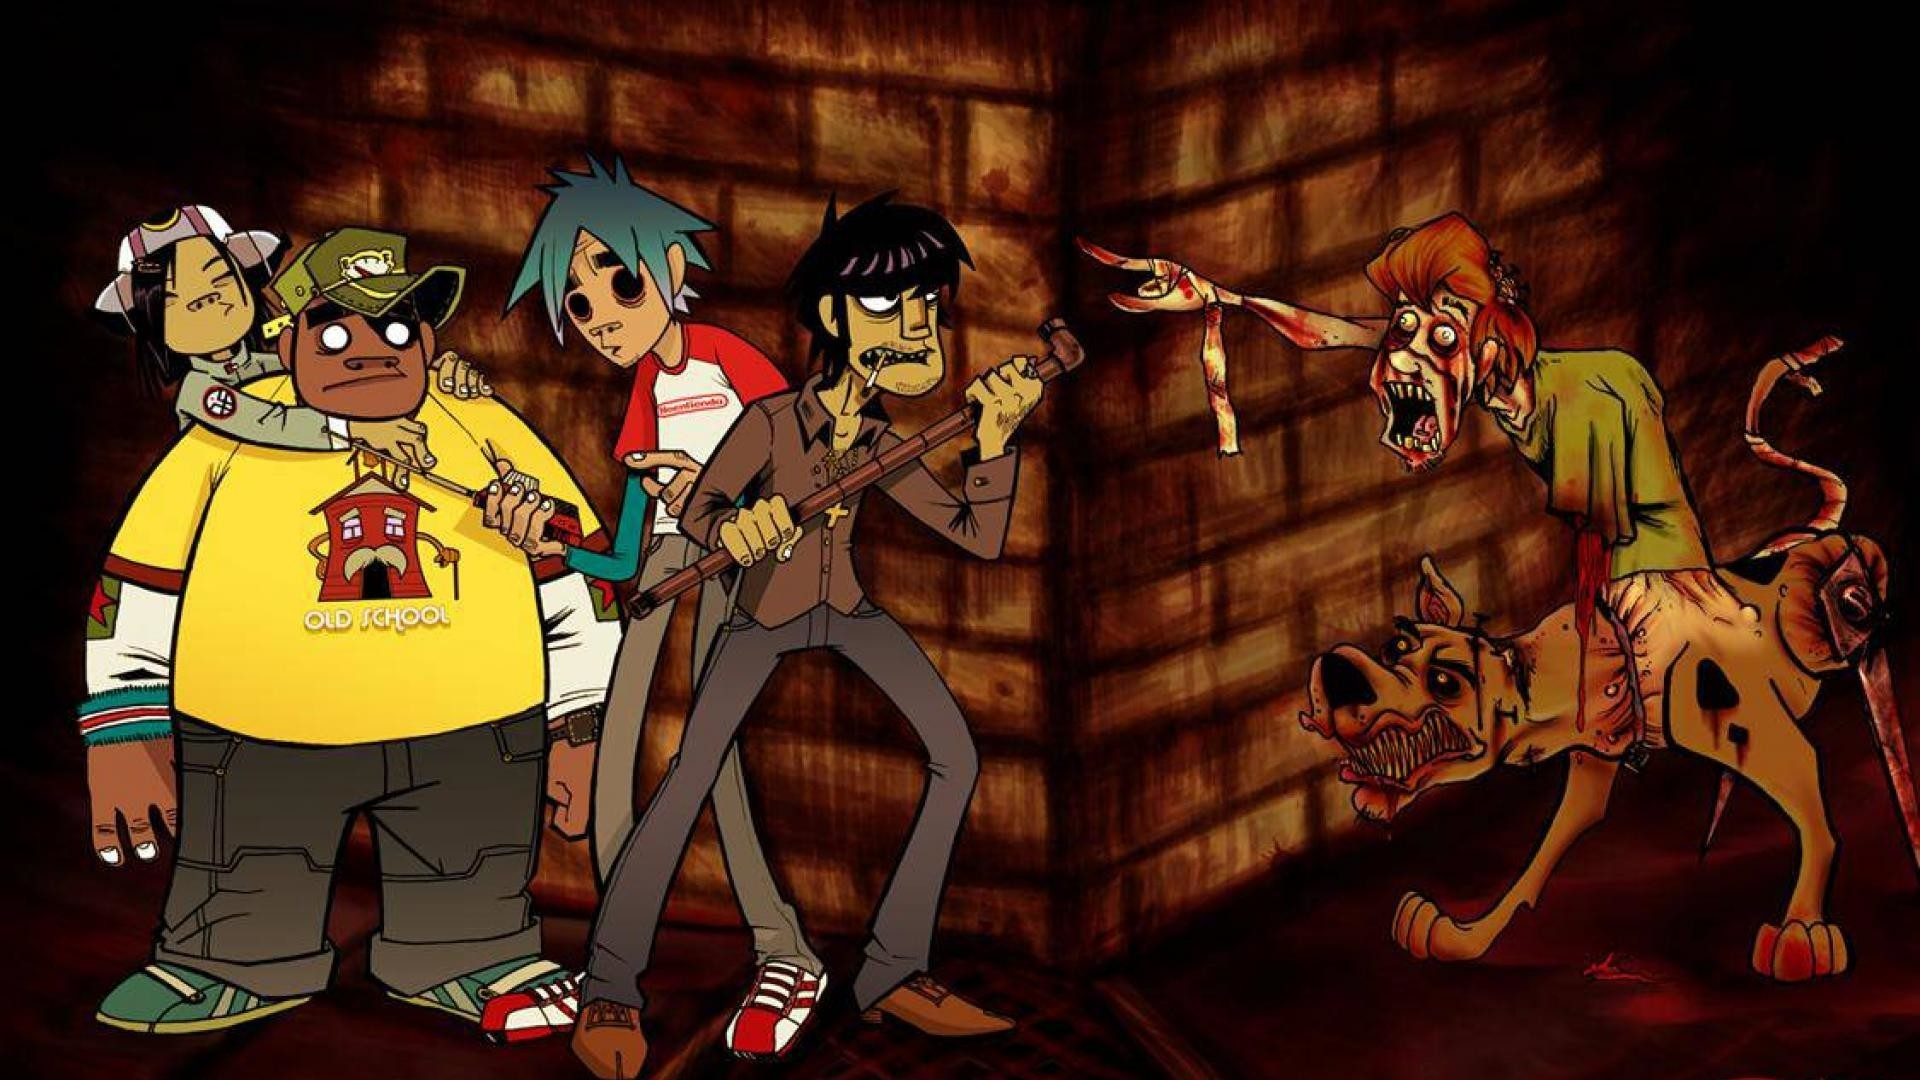 1920x1080 scooby-doo-wallpaper-1920×1080-high-resolution-WTG20065504